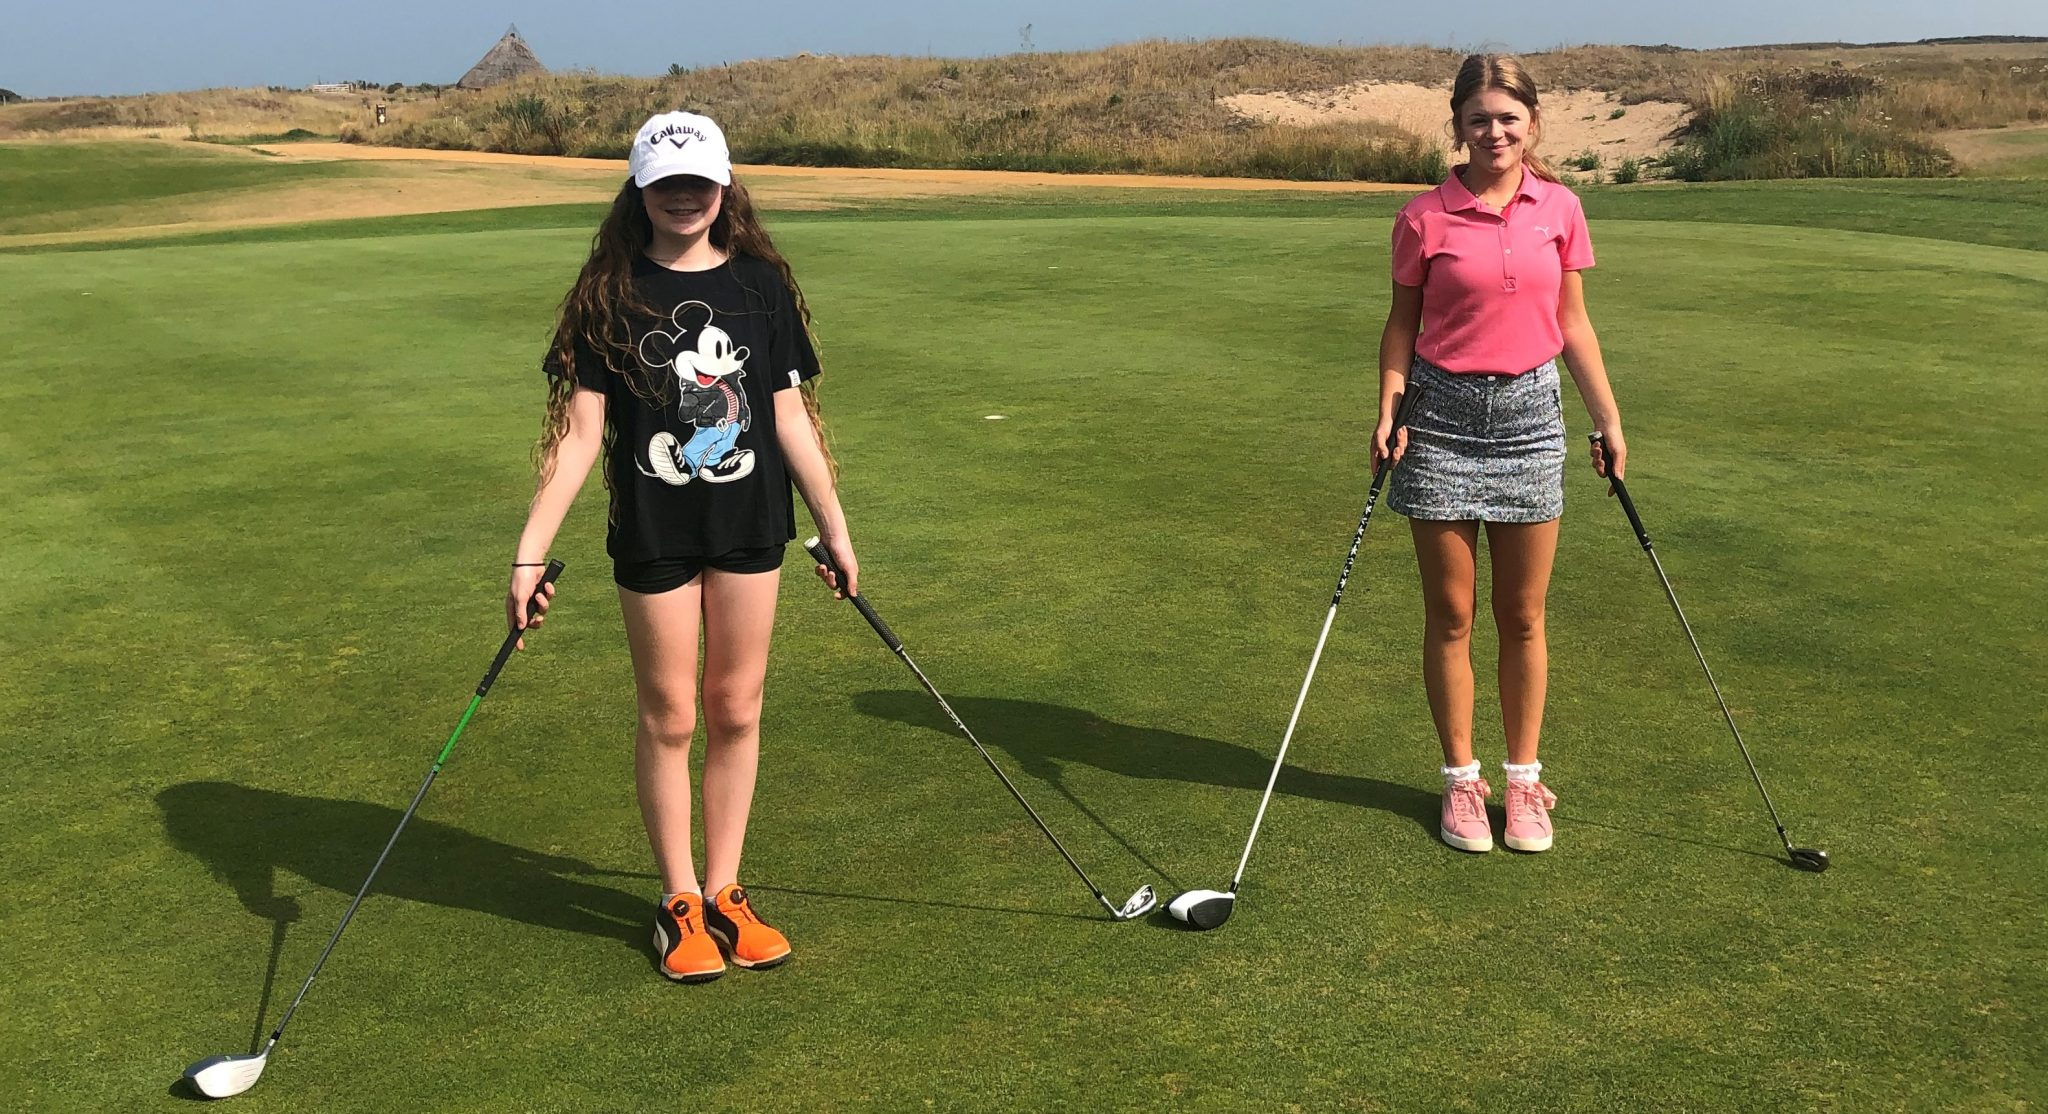 Prince's aim to build on Women and Girls' Golf Week